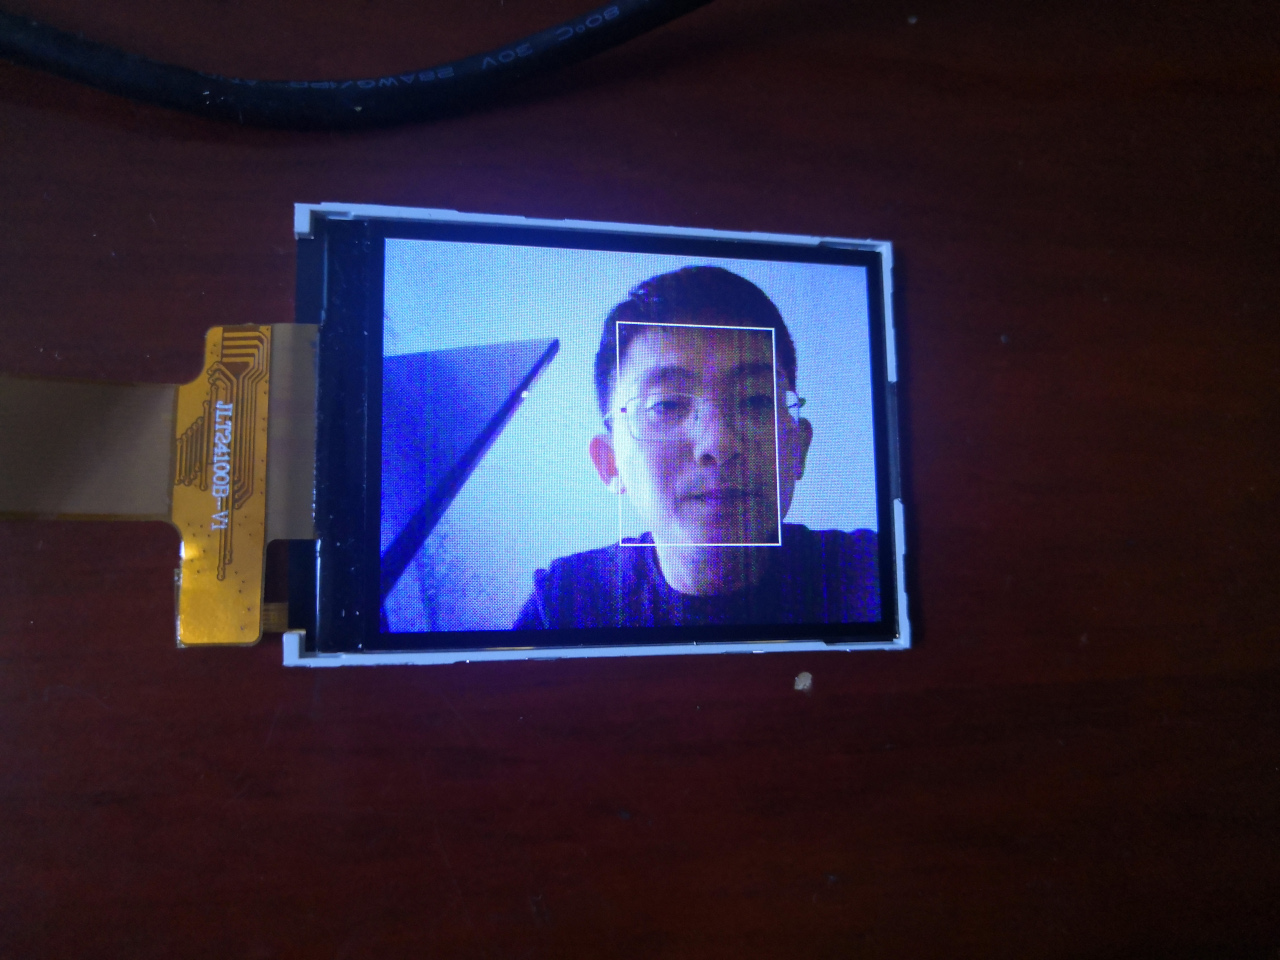 Widora AIRV Face Detection